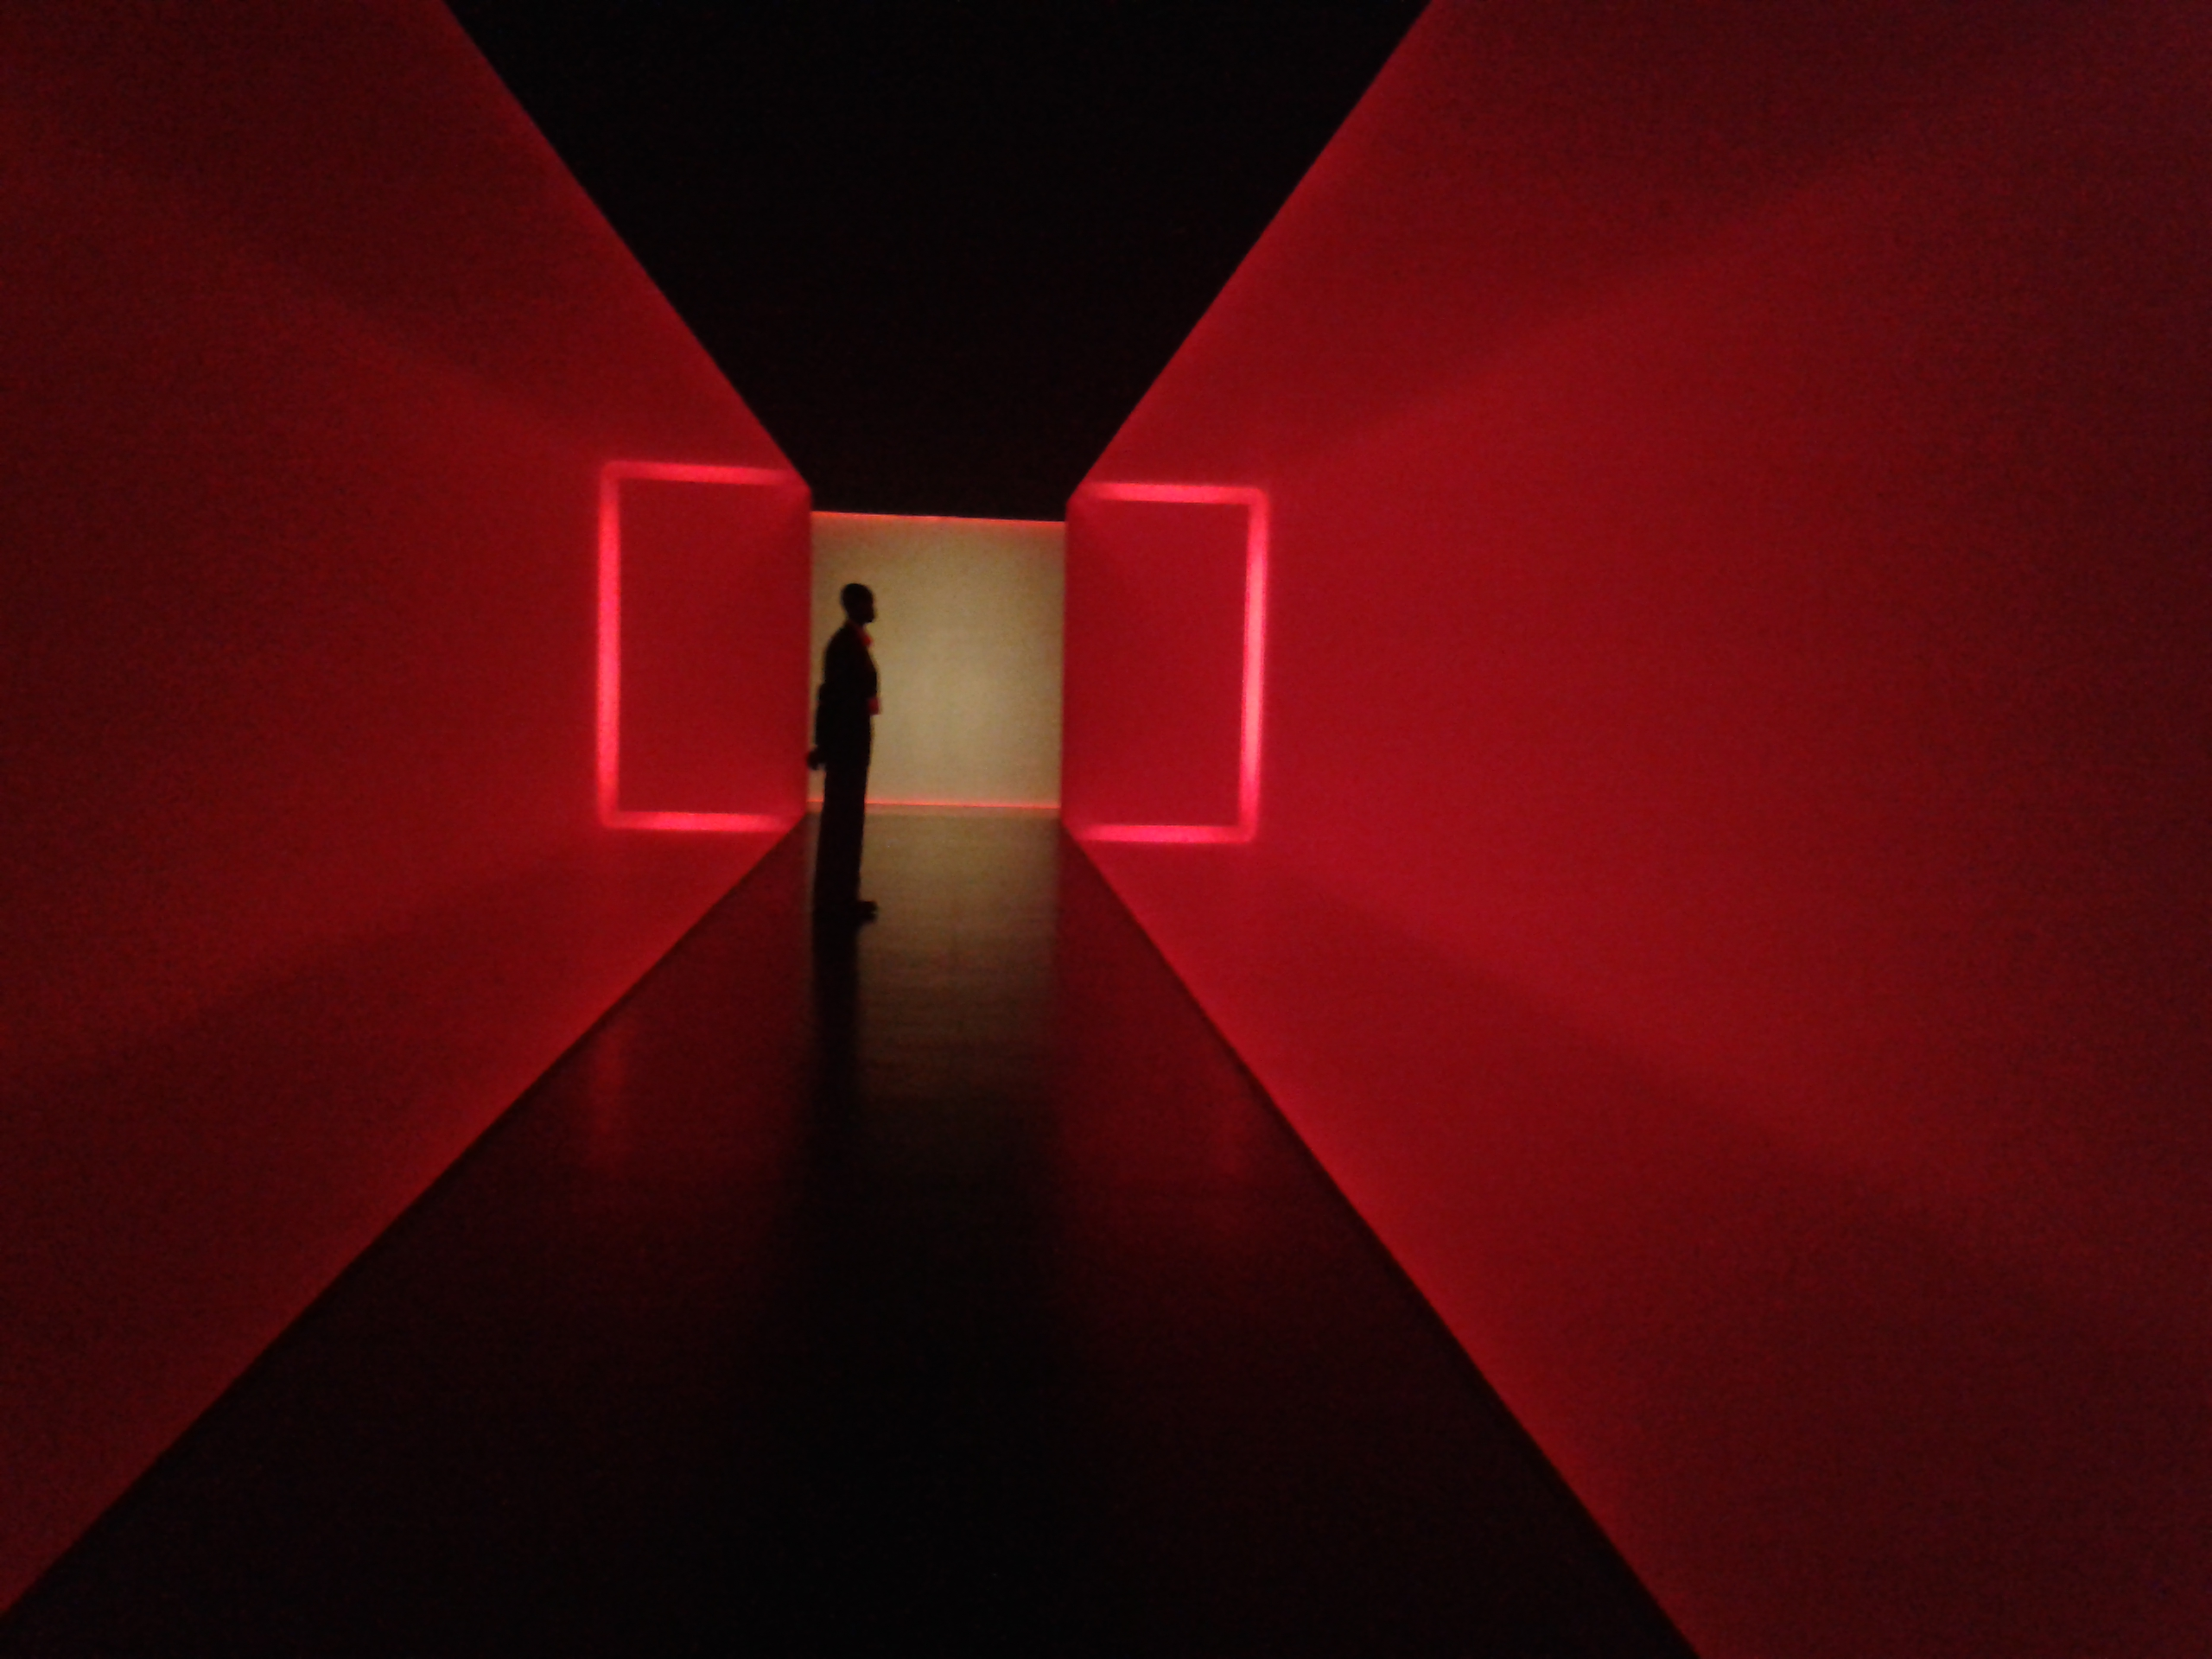 Turrell's The Light Inside at The Museum of Fine Arts, Houston (CC-BY 4.0 International, Beck Pitt)